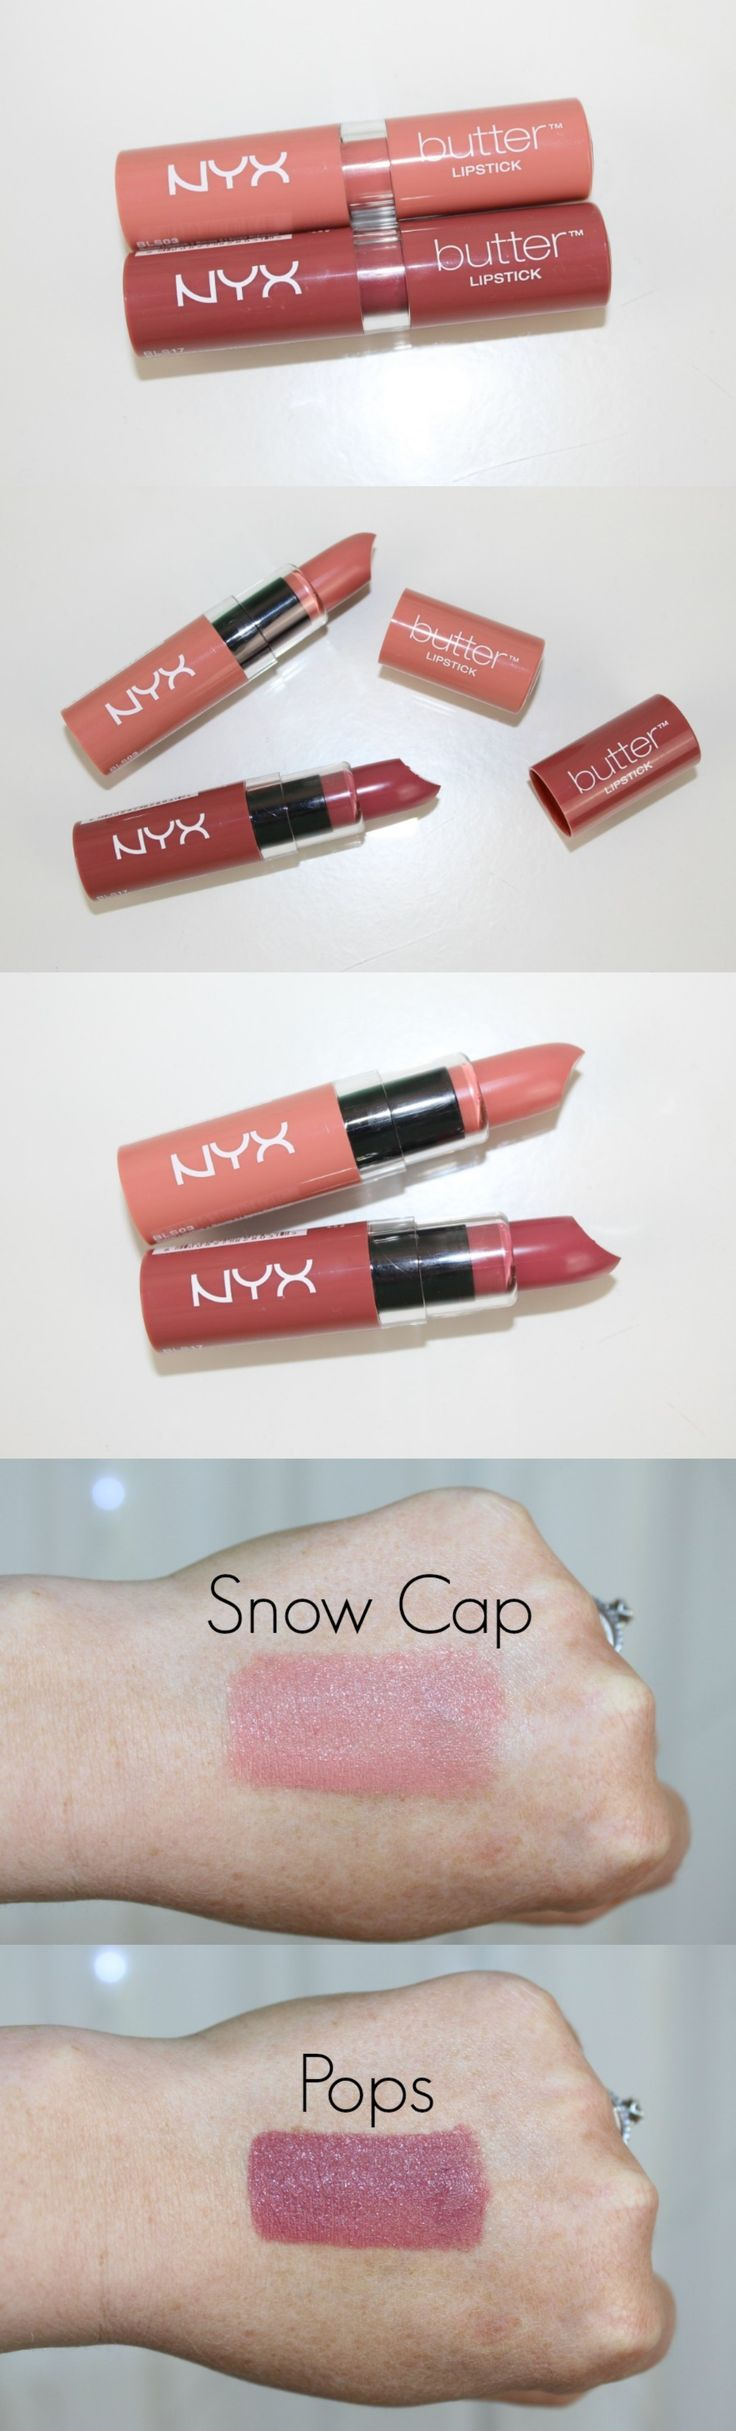 NYX Butter Lipstick Review & Photos